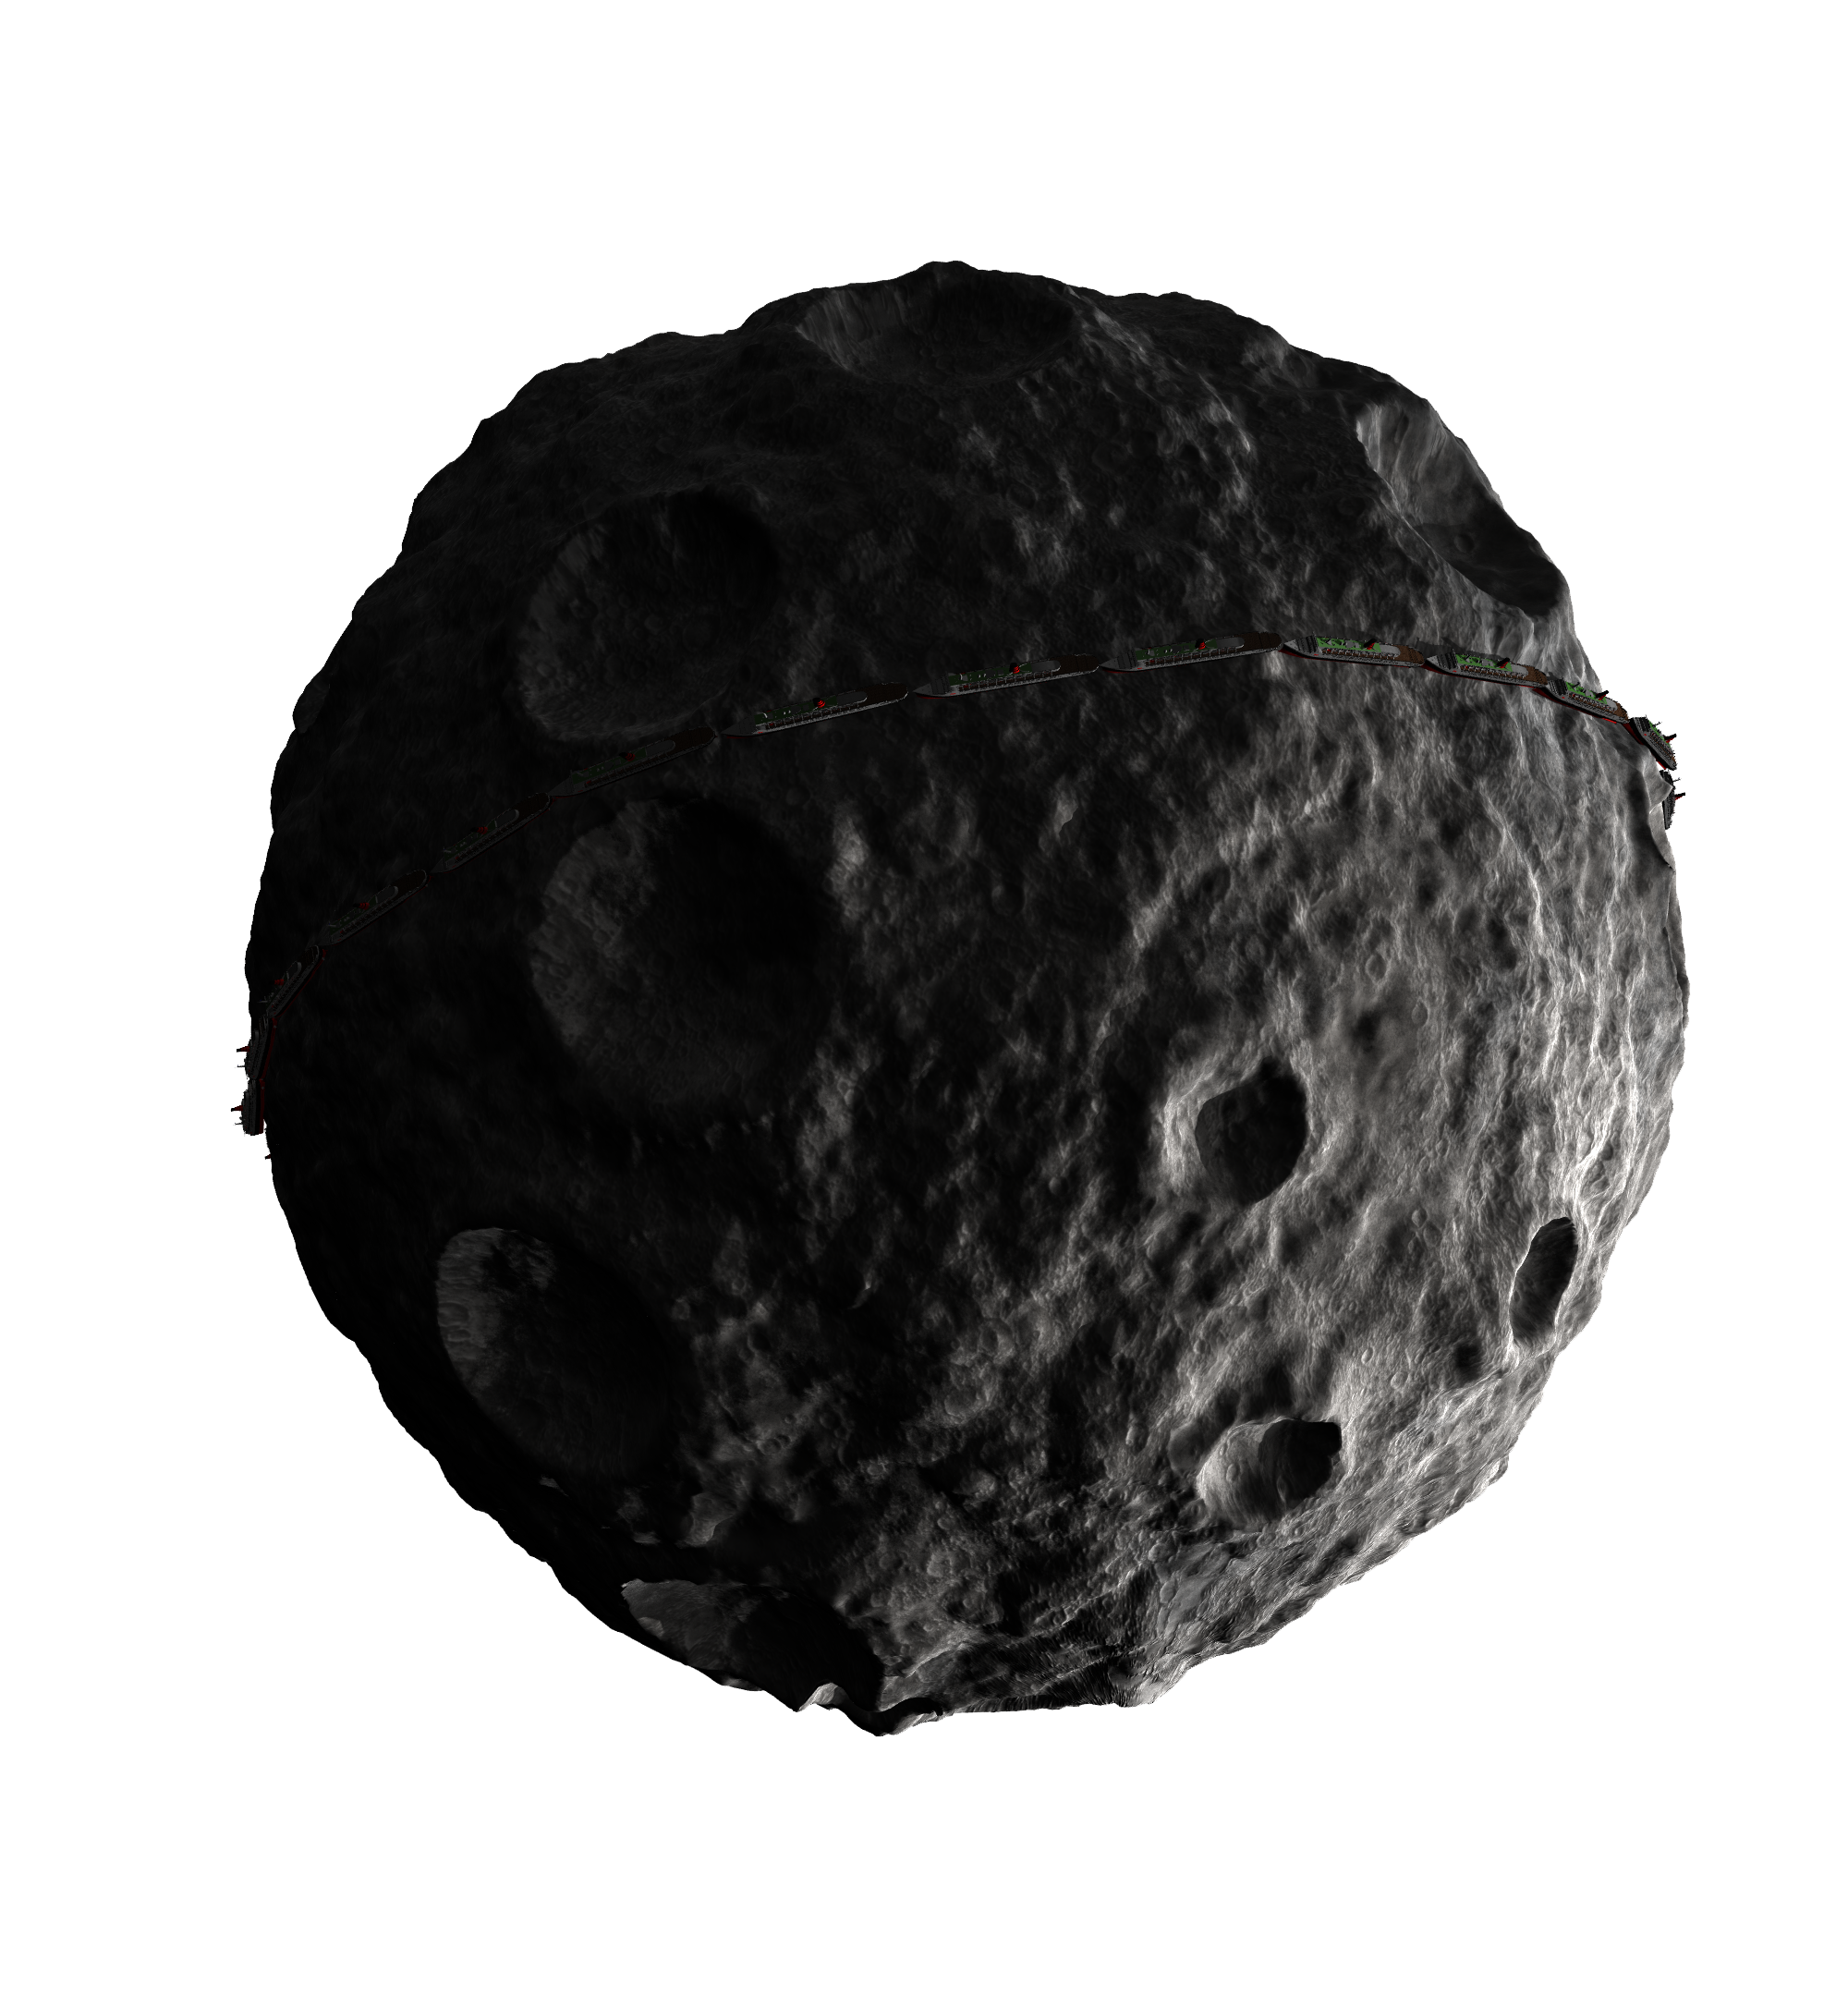 Asteroid-PNG-Transparent